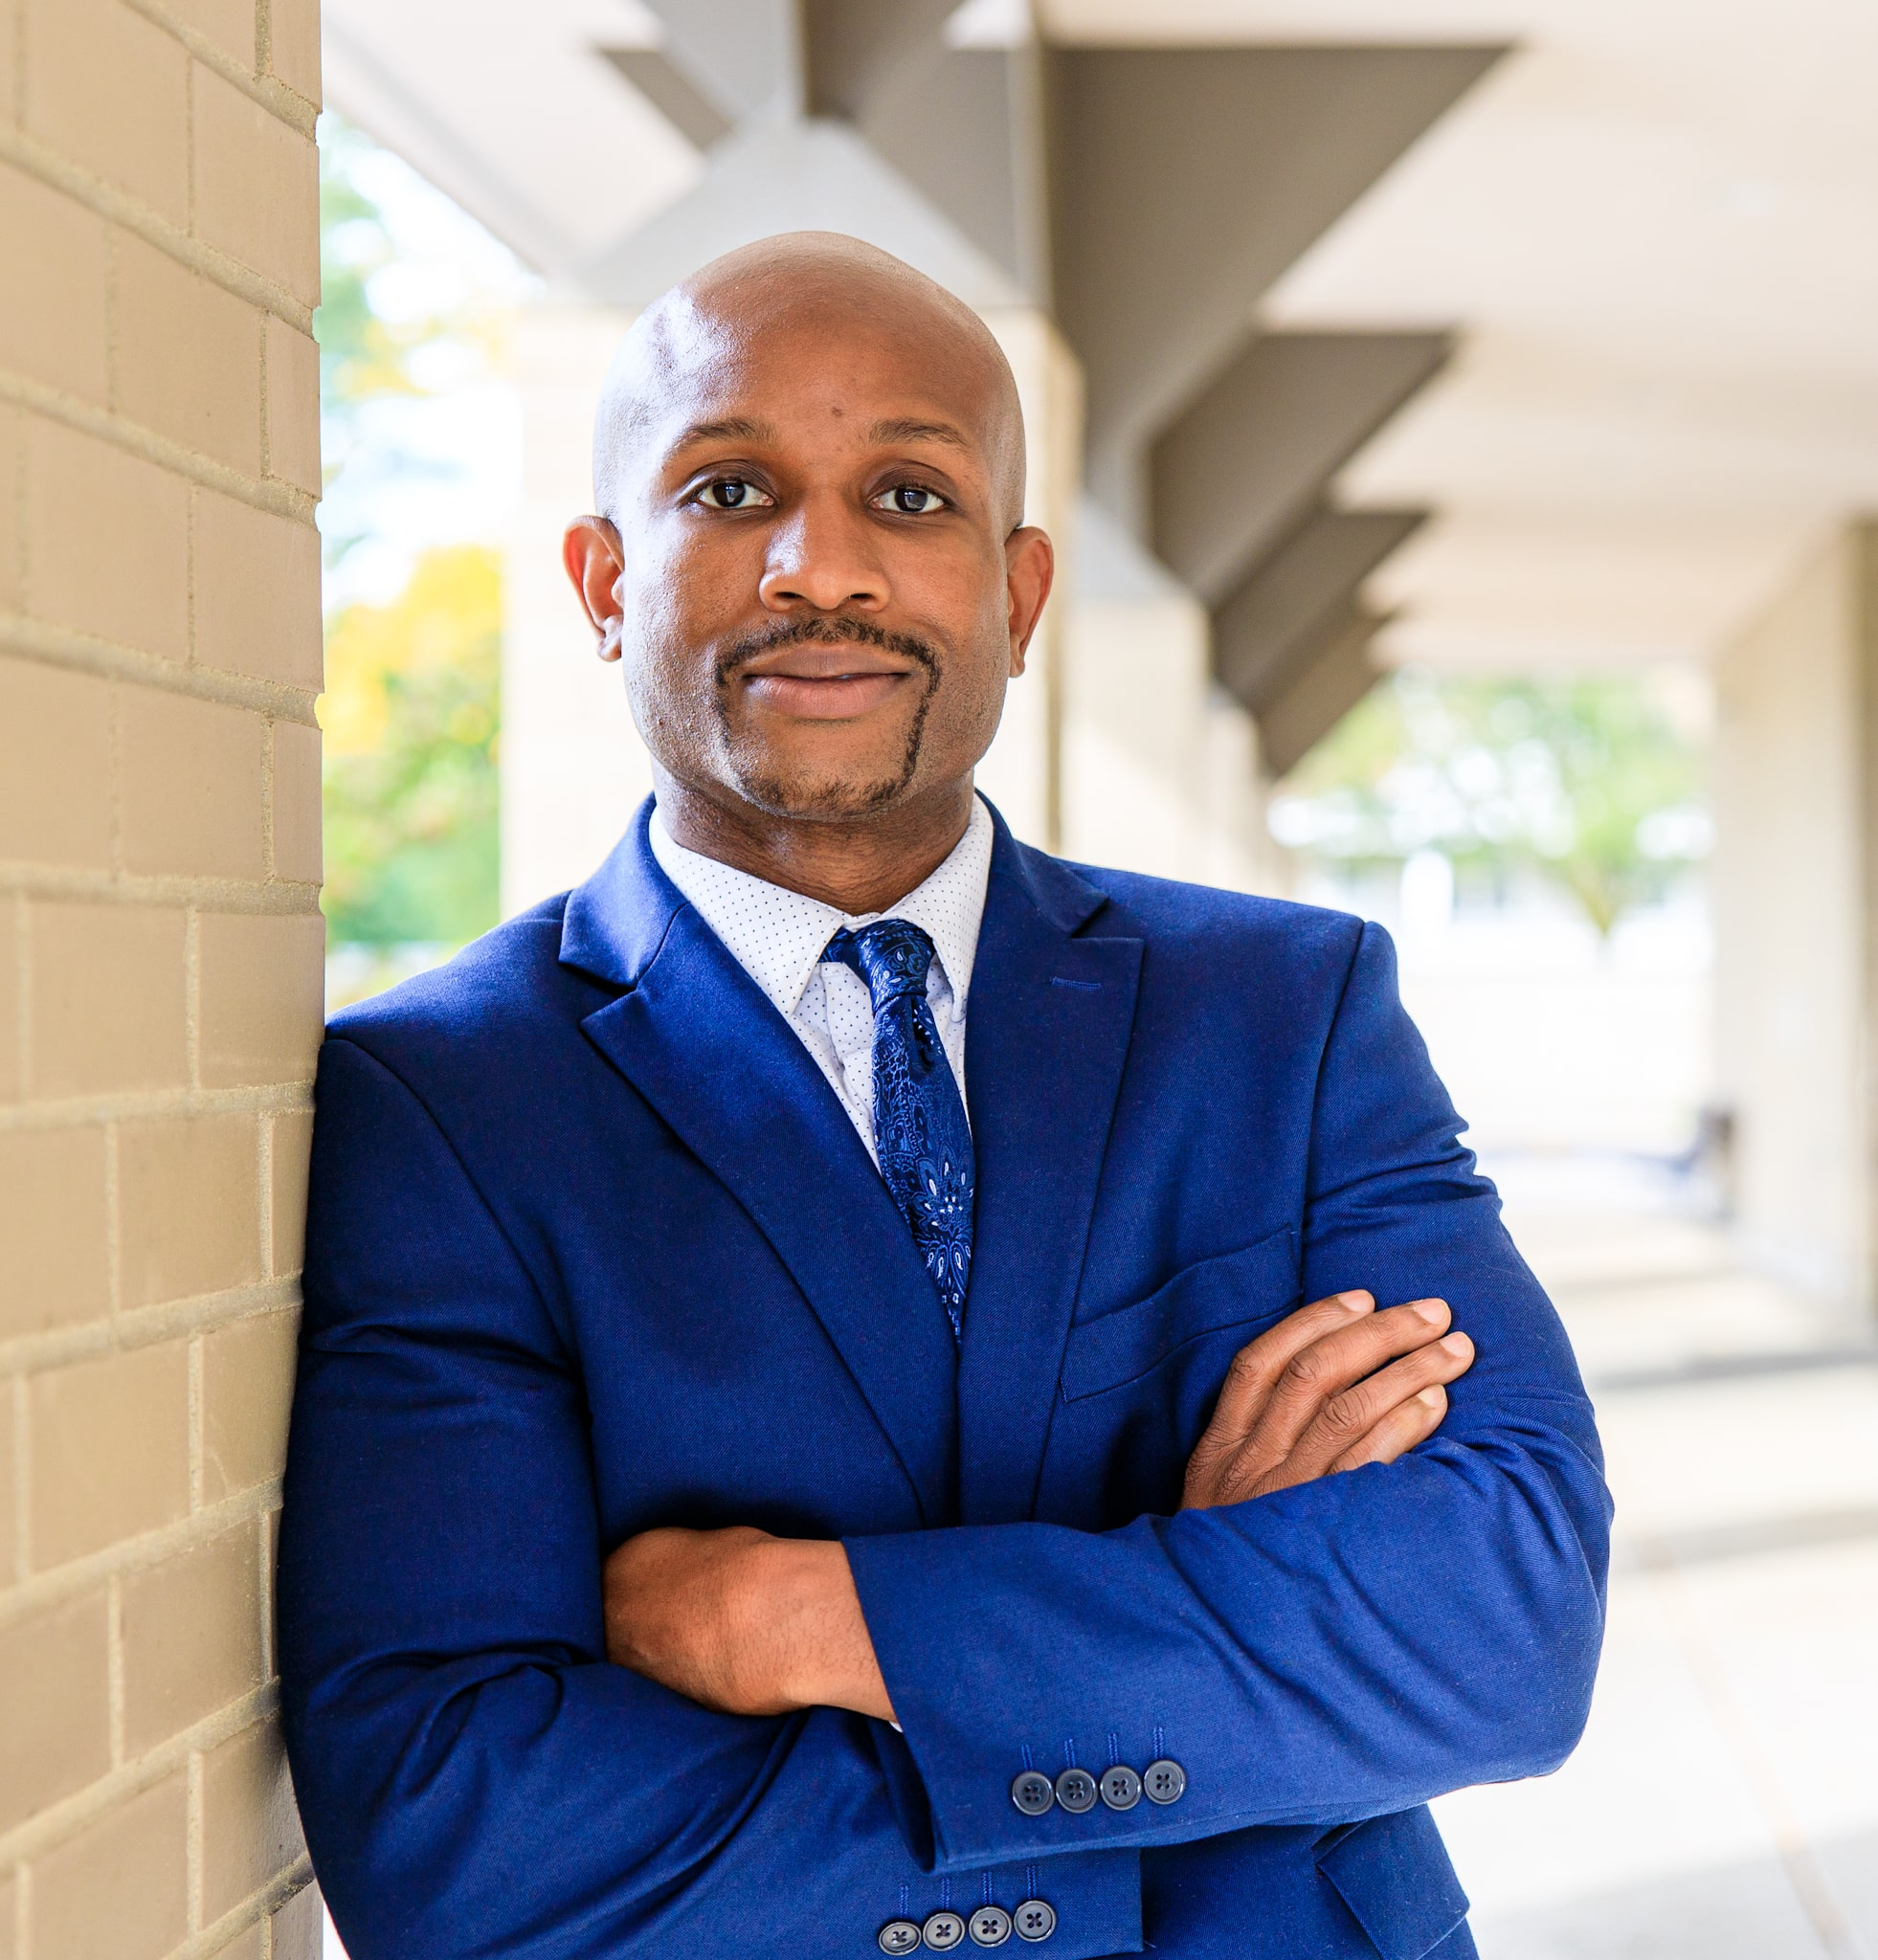 A handsome bald smiling man with brown eyes, wearing a blue business suit, blue tie, white button down, crossing his arms, leaning against a brick column. Portrait taken by Hance Studios in Berkley, Michigan 48072.